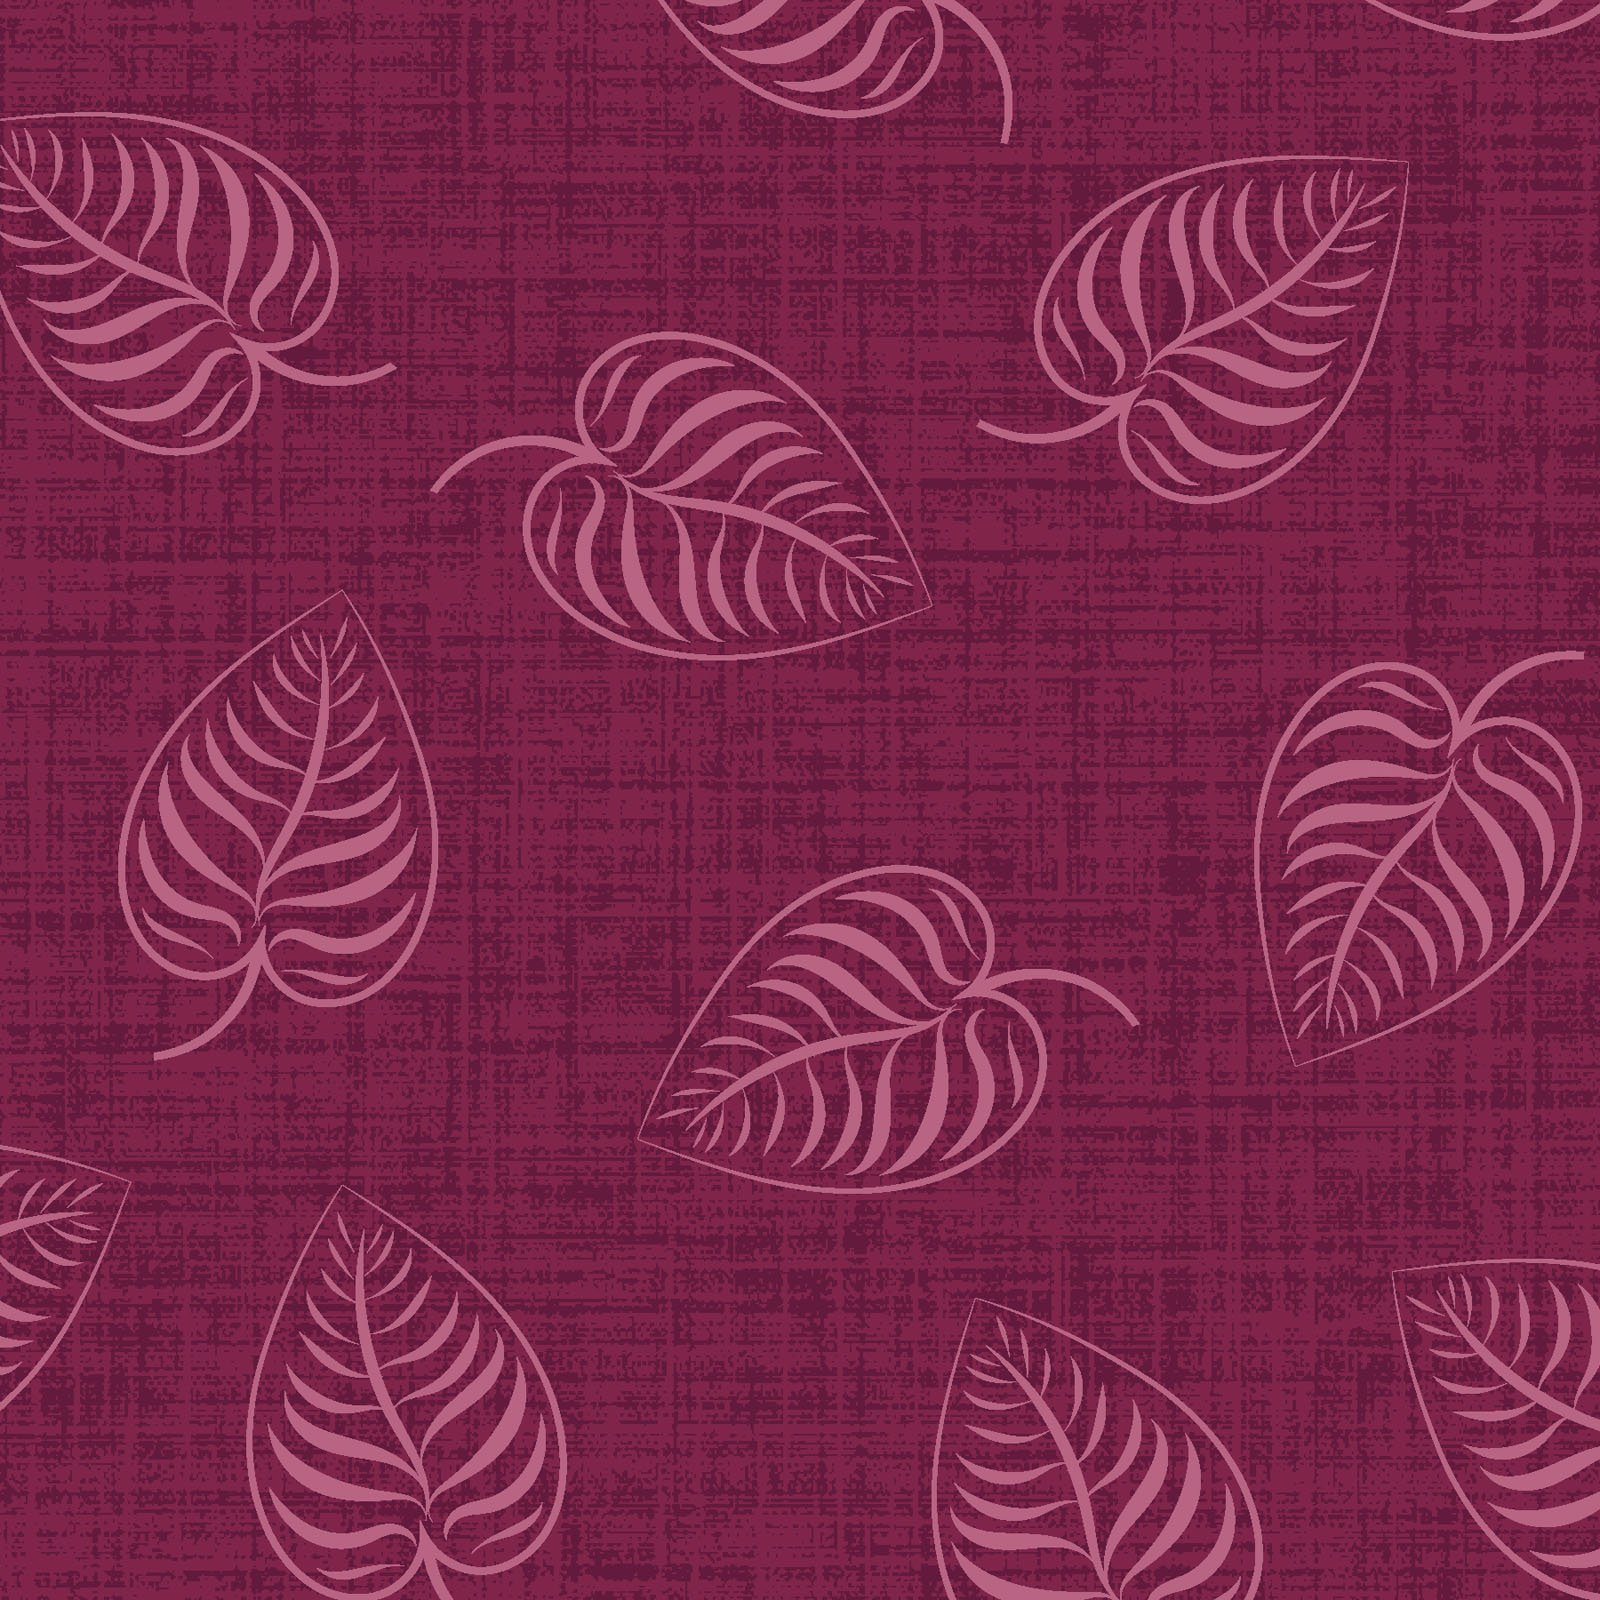 EESC-9883 R - FLOWER & VINE BY MONIQUE JACOBS LEAFPRINT RED - ARRIVING MARCH 2021